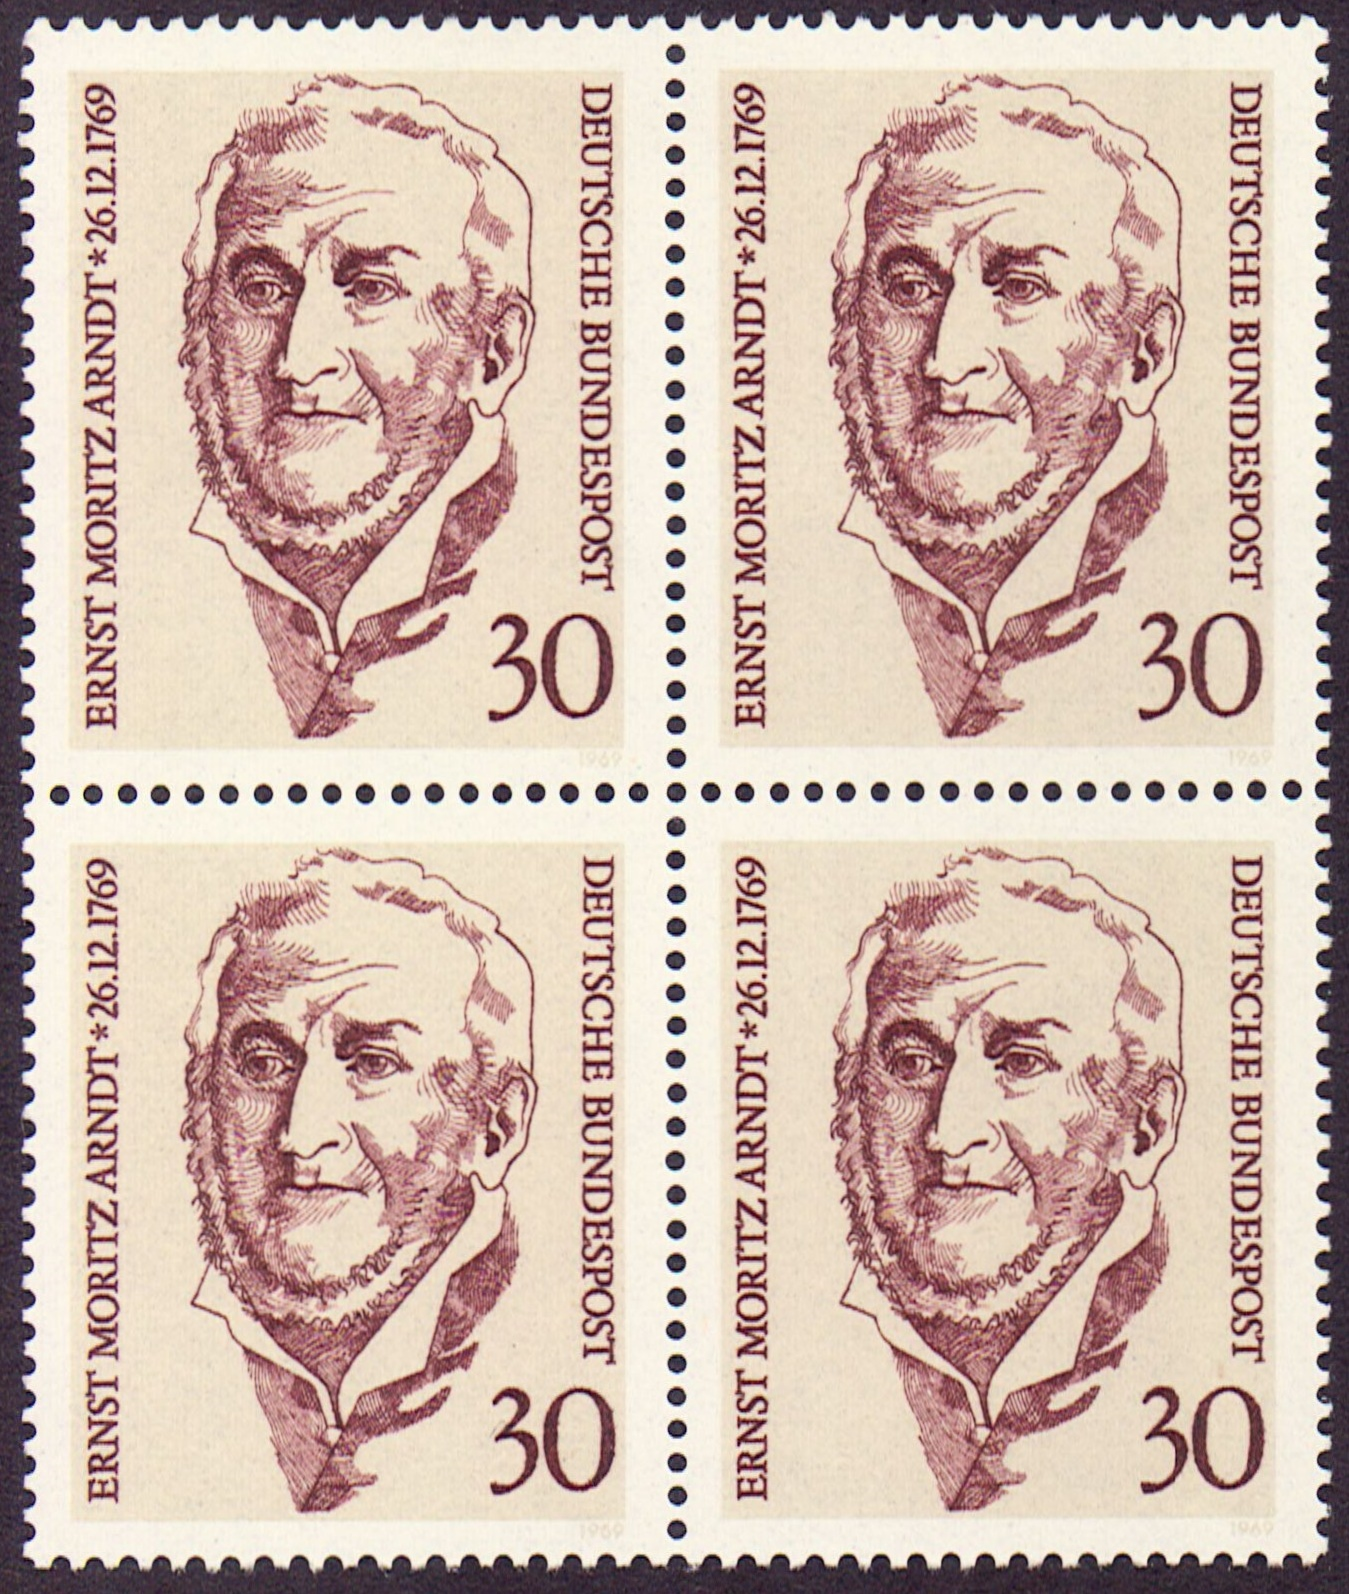 Germany Scott 1013, MNH, Block of 4, BL4, Ernst Moritz Arndt